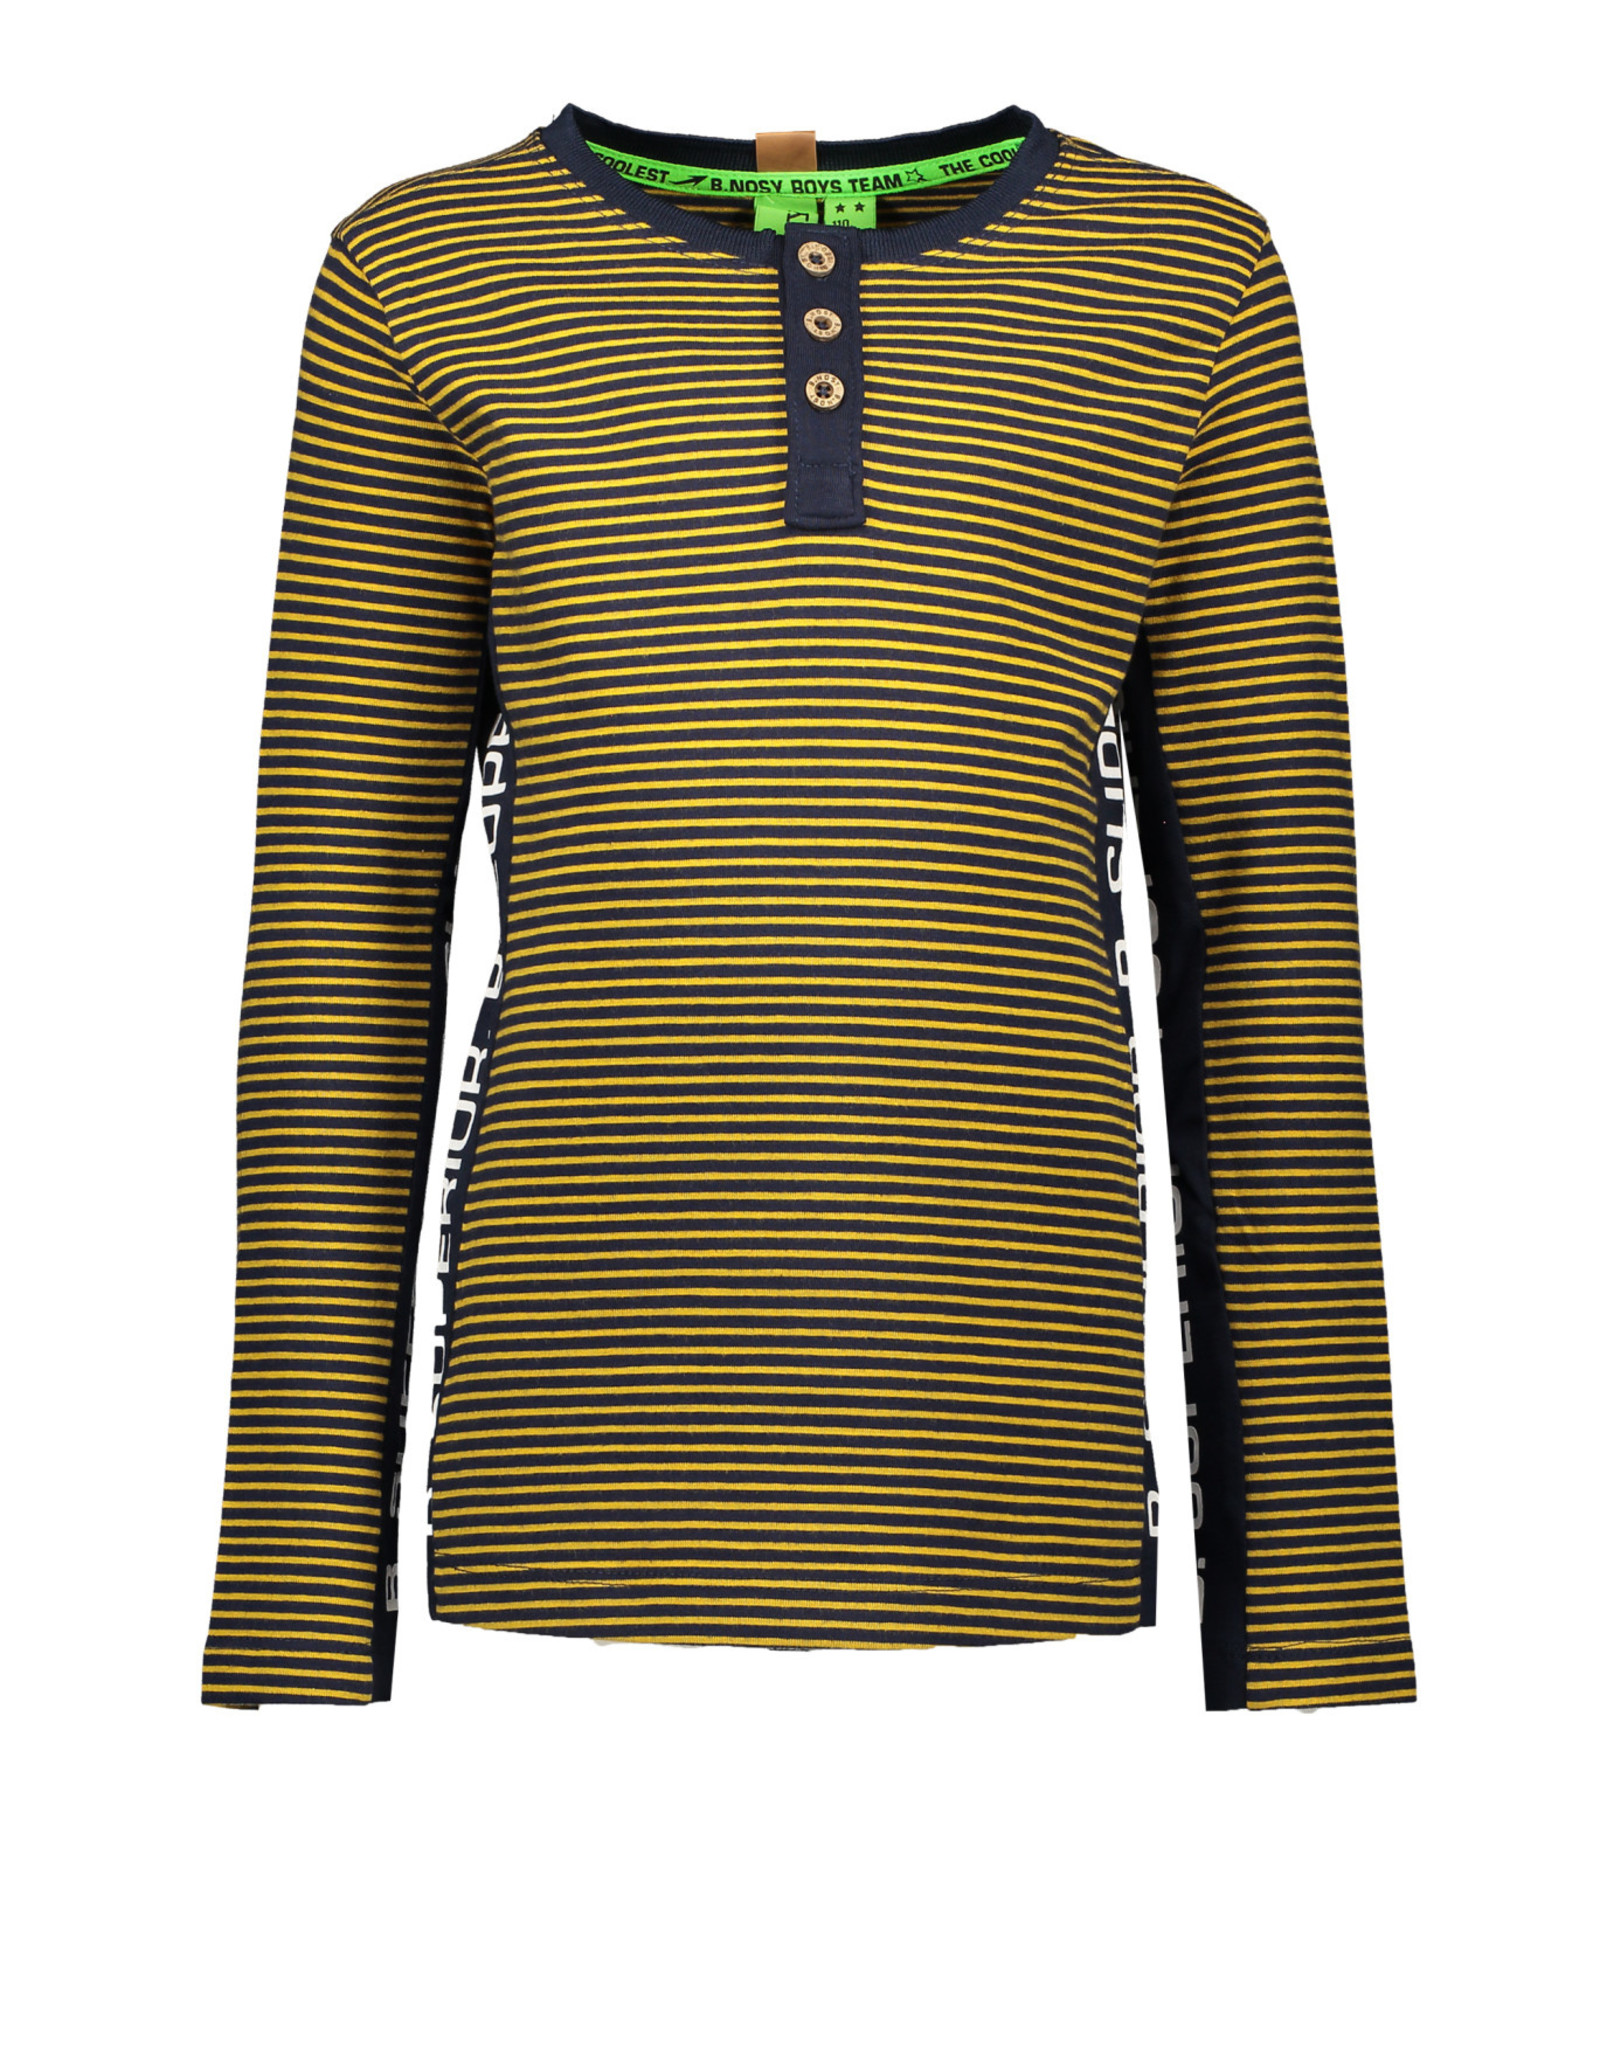 B. Nosy Boys ls shirt with button side part with print on body + sleeve